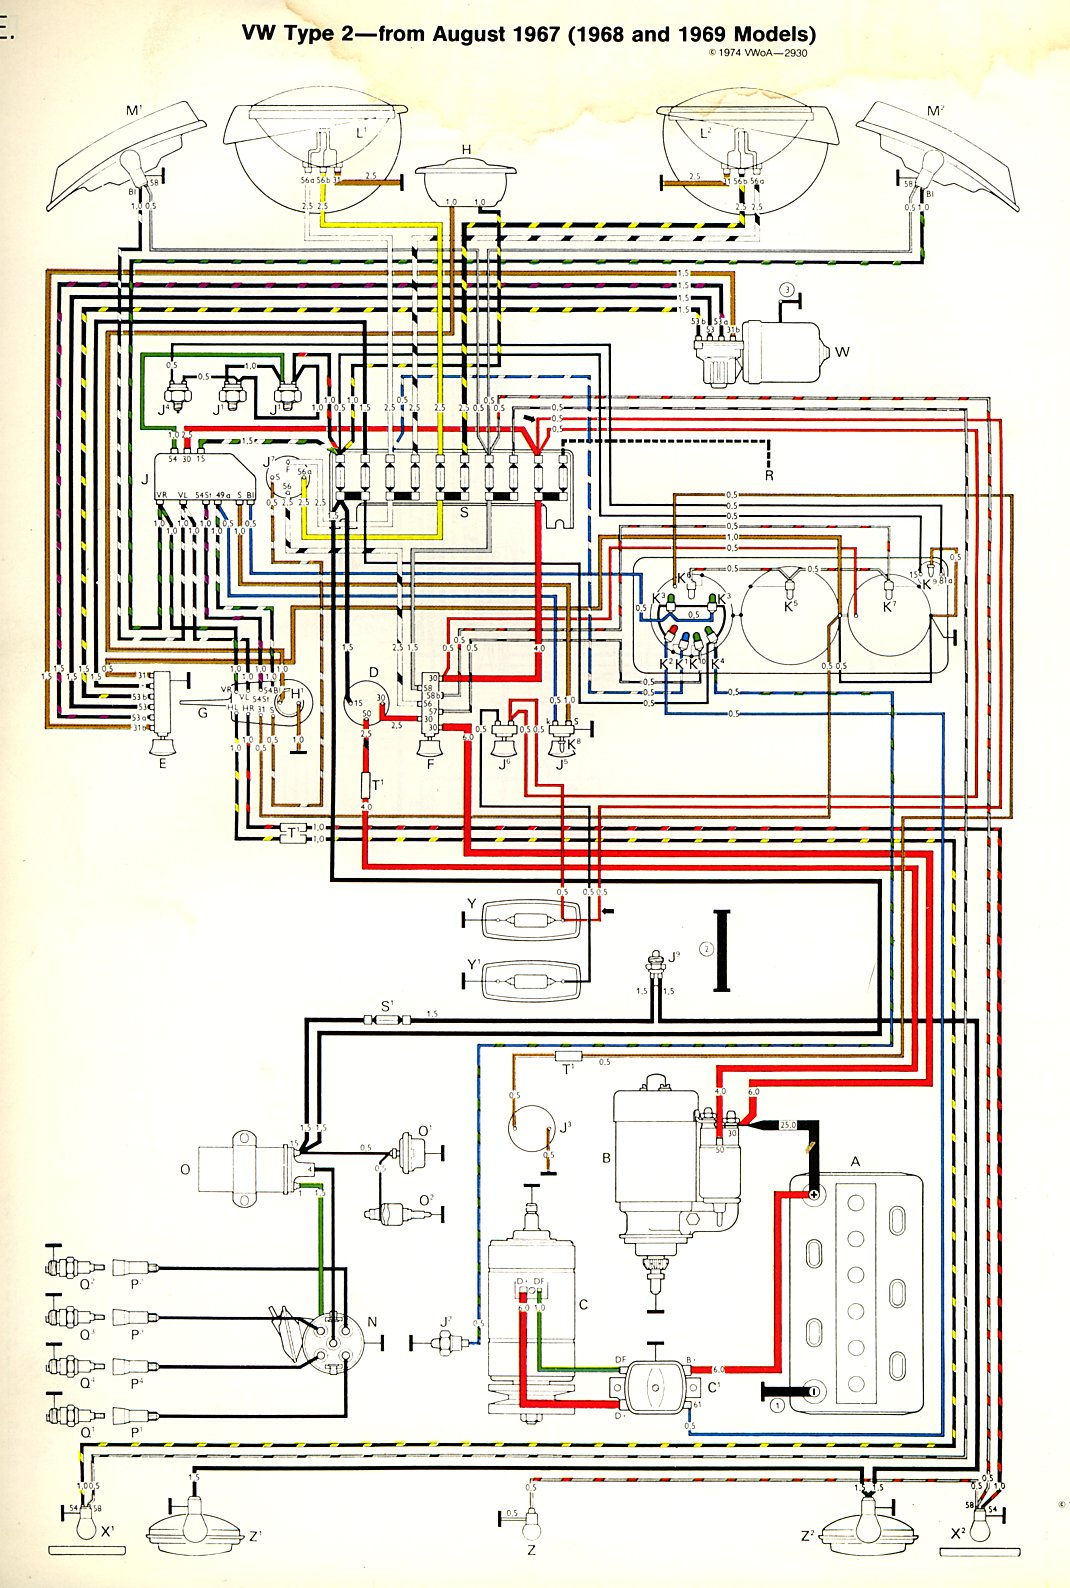 baybus_6869a thesamba com type 2 wiring diagrams 1973 vw wiring diagram at fashall.co